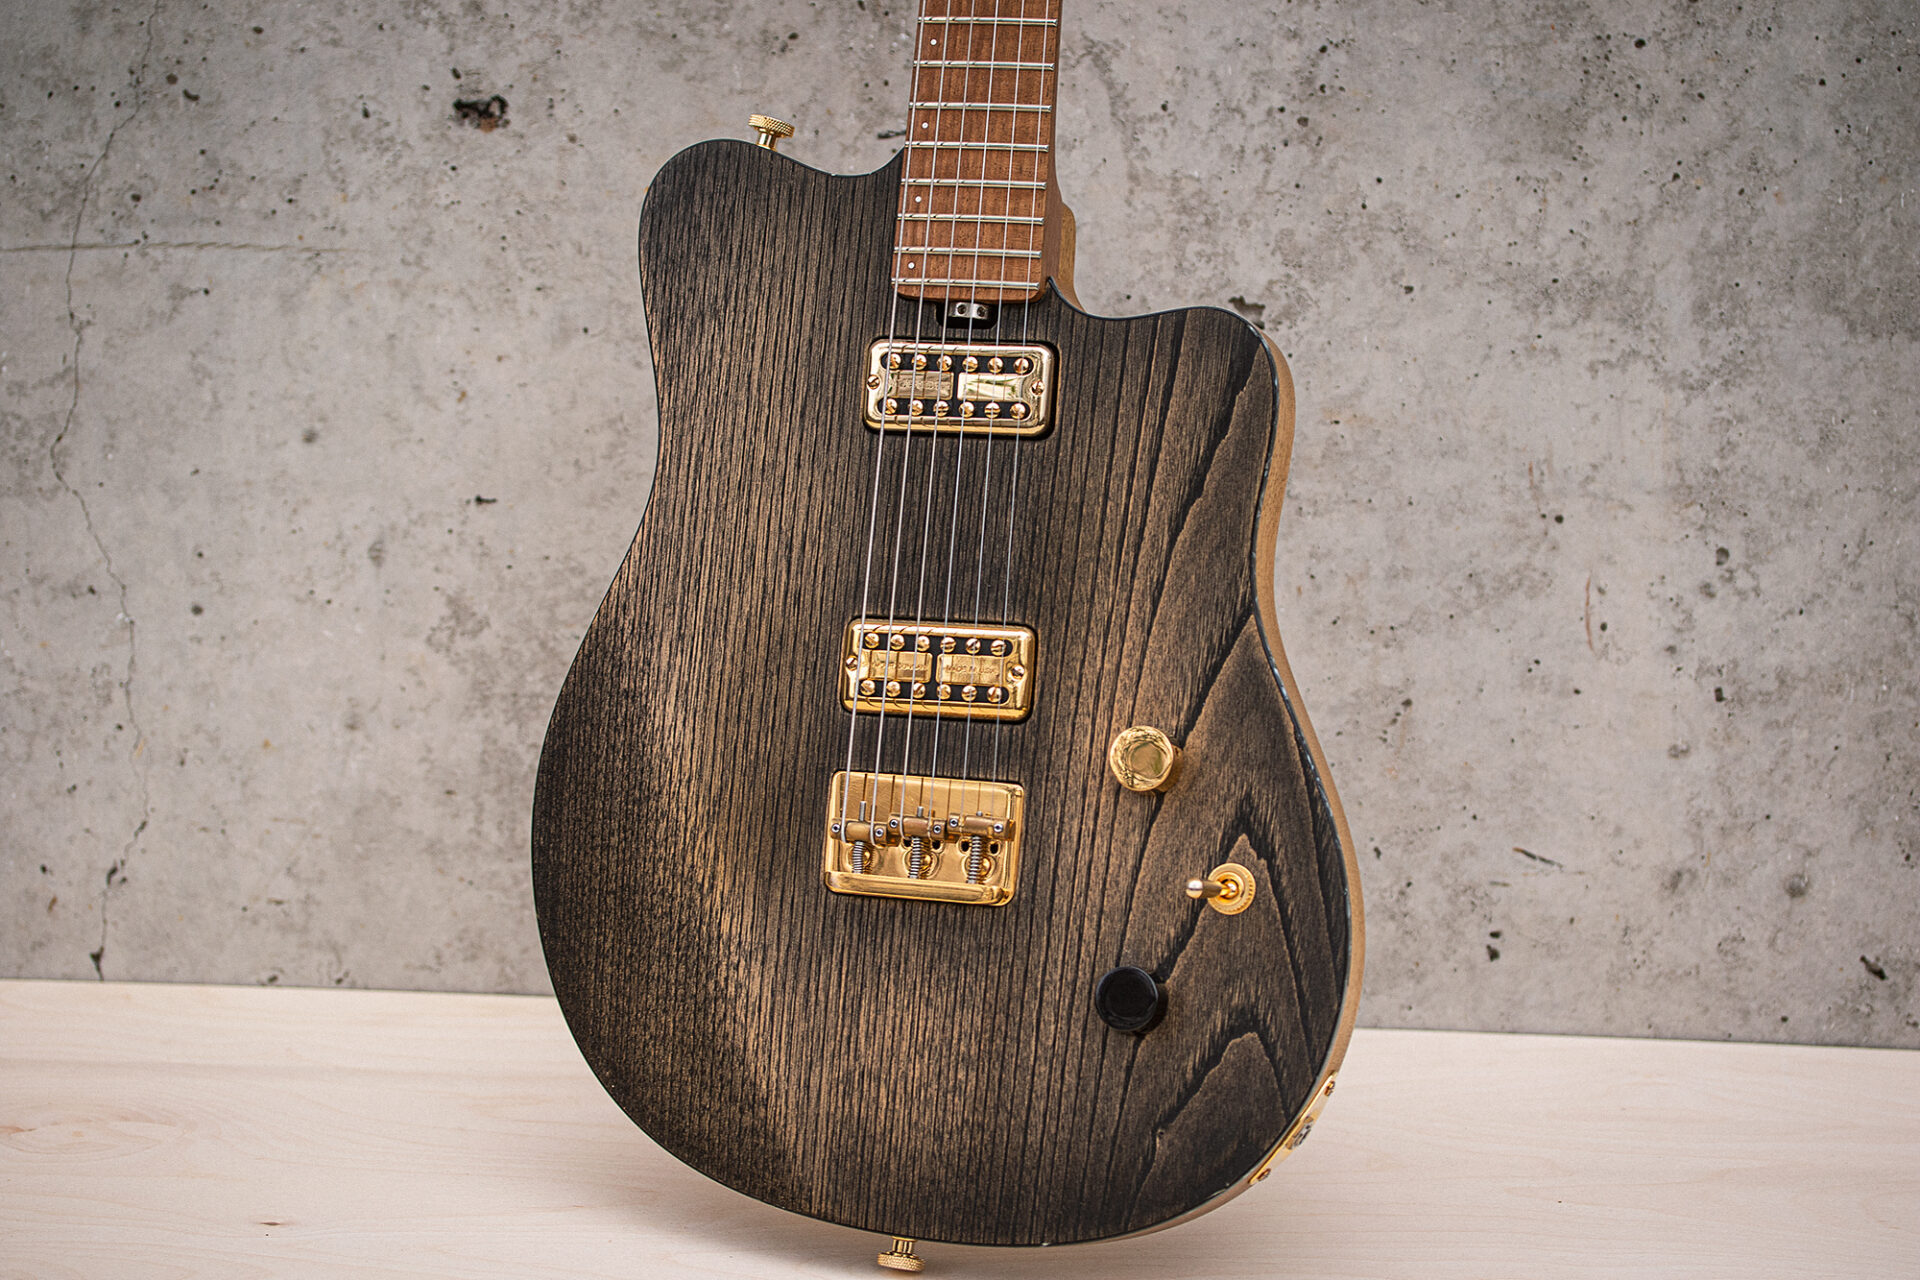 On Guitars - Star Black FF front-01